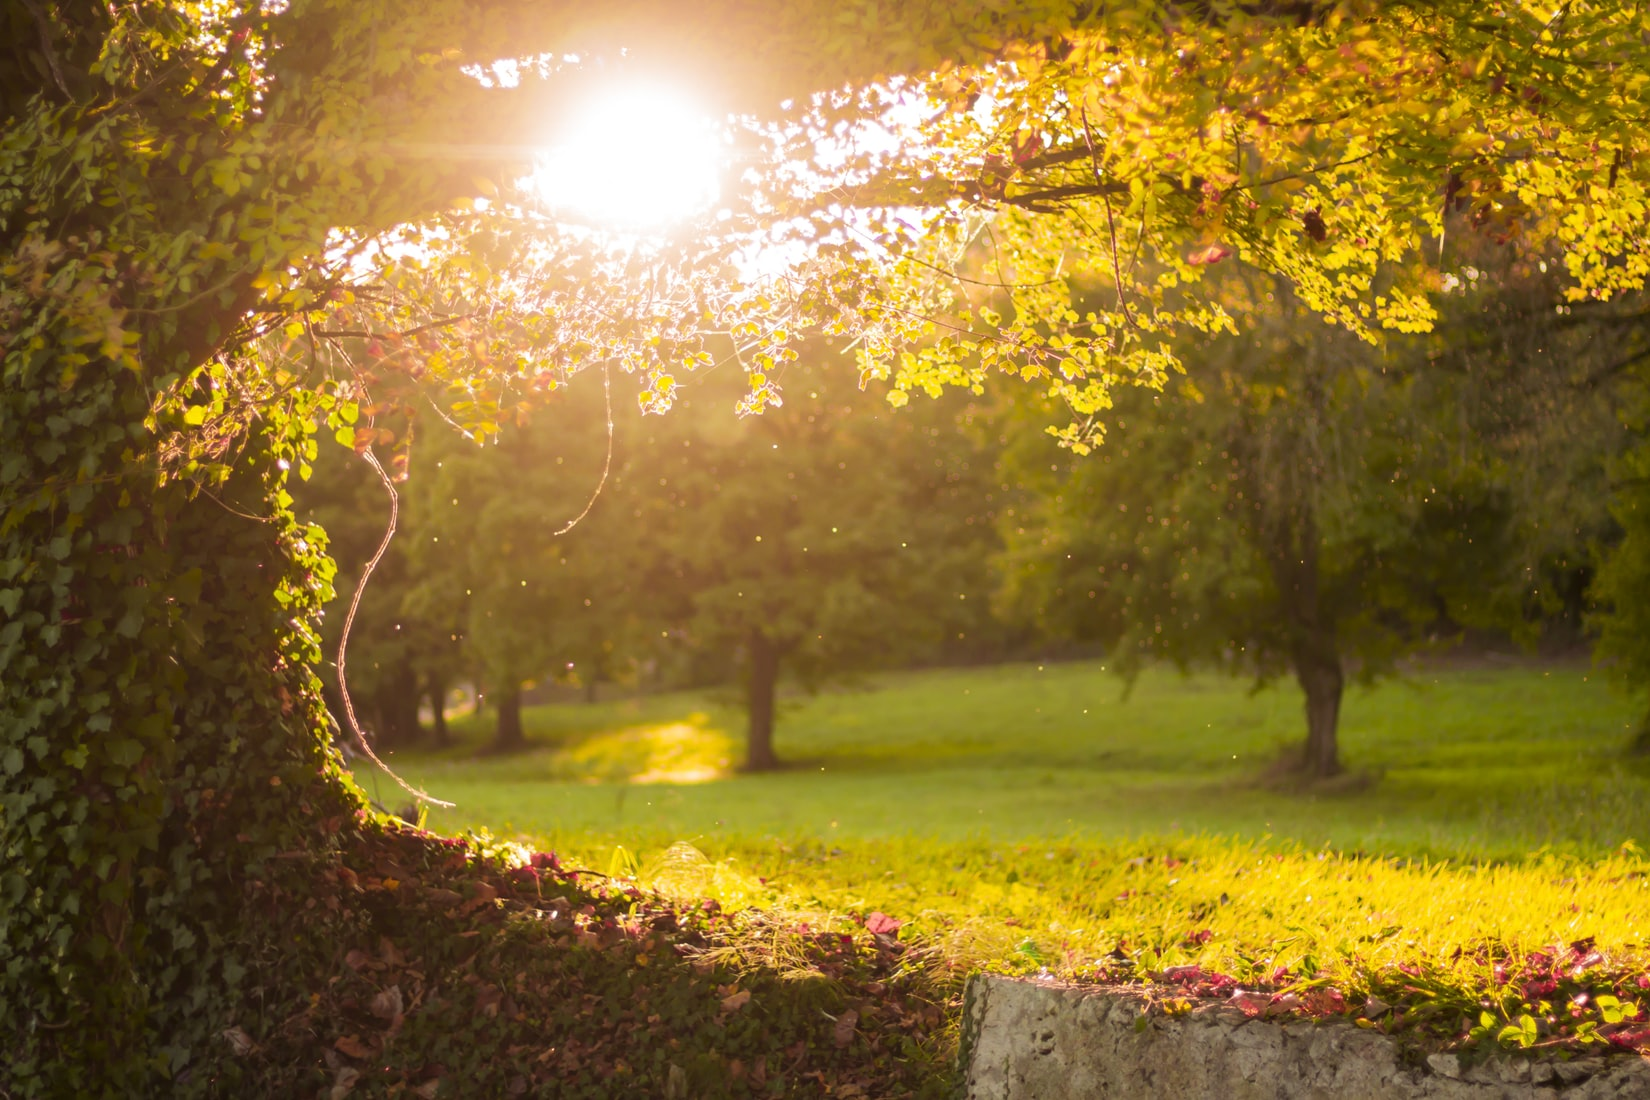 Green trees in park at golden hour